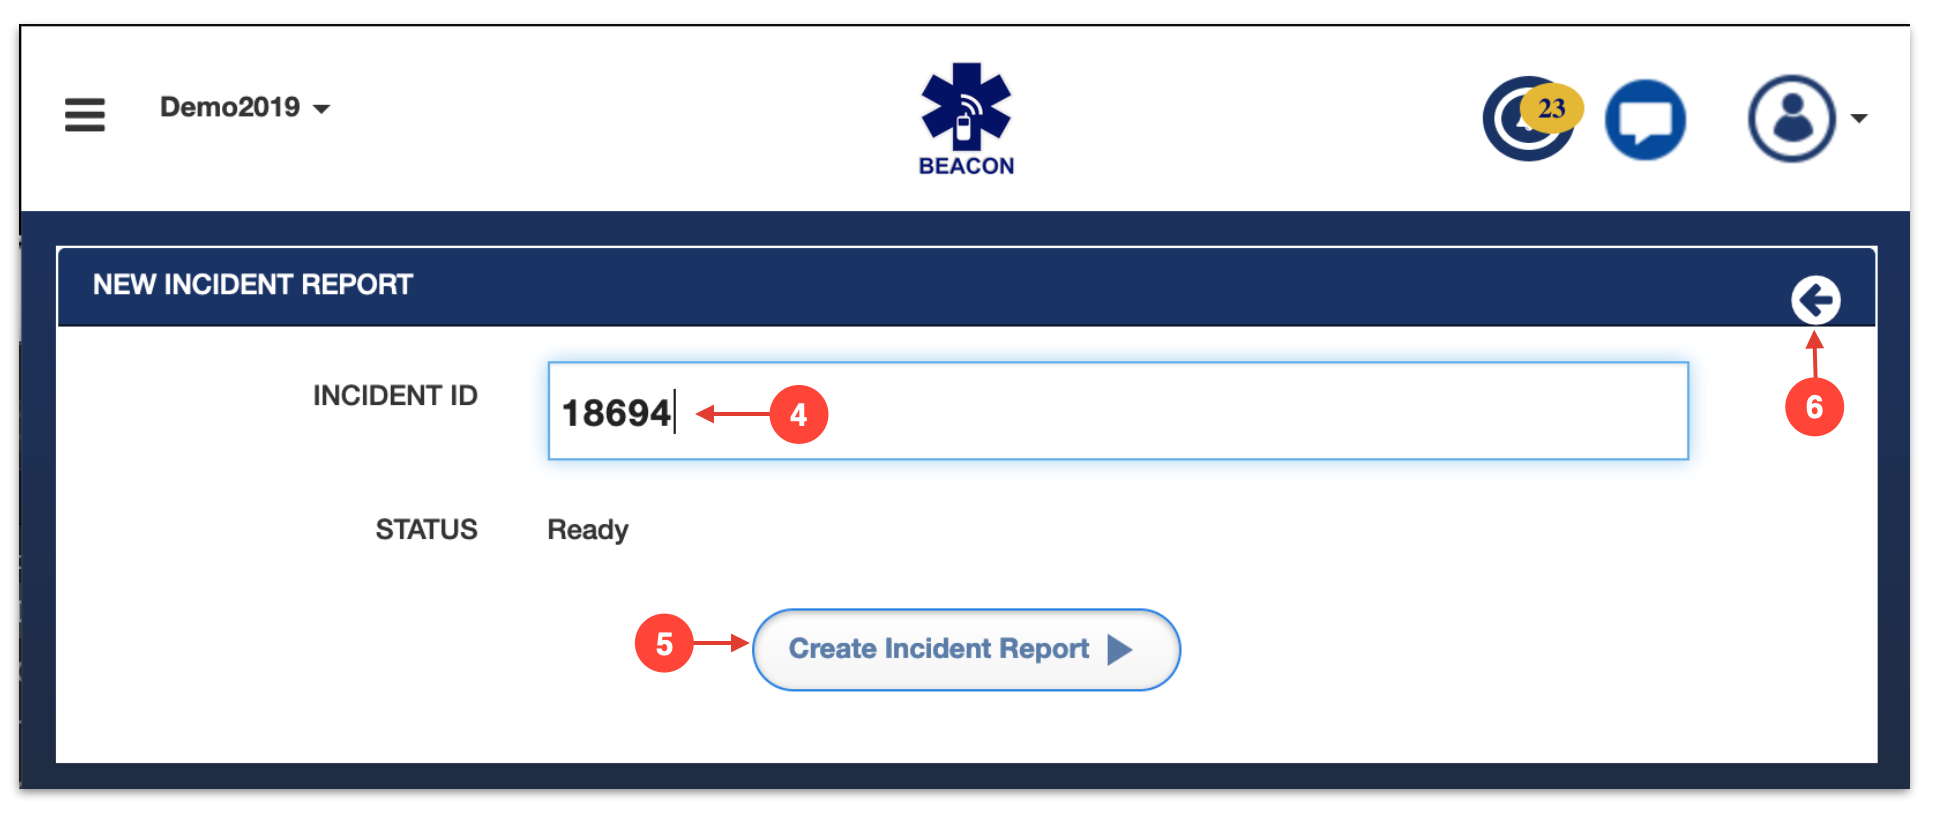 Update Incident Notes - Beacon Emergency Dispatch